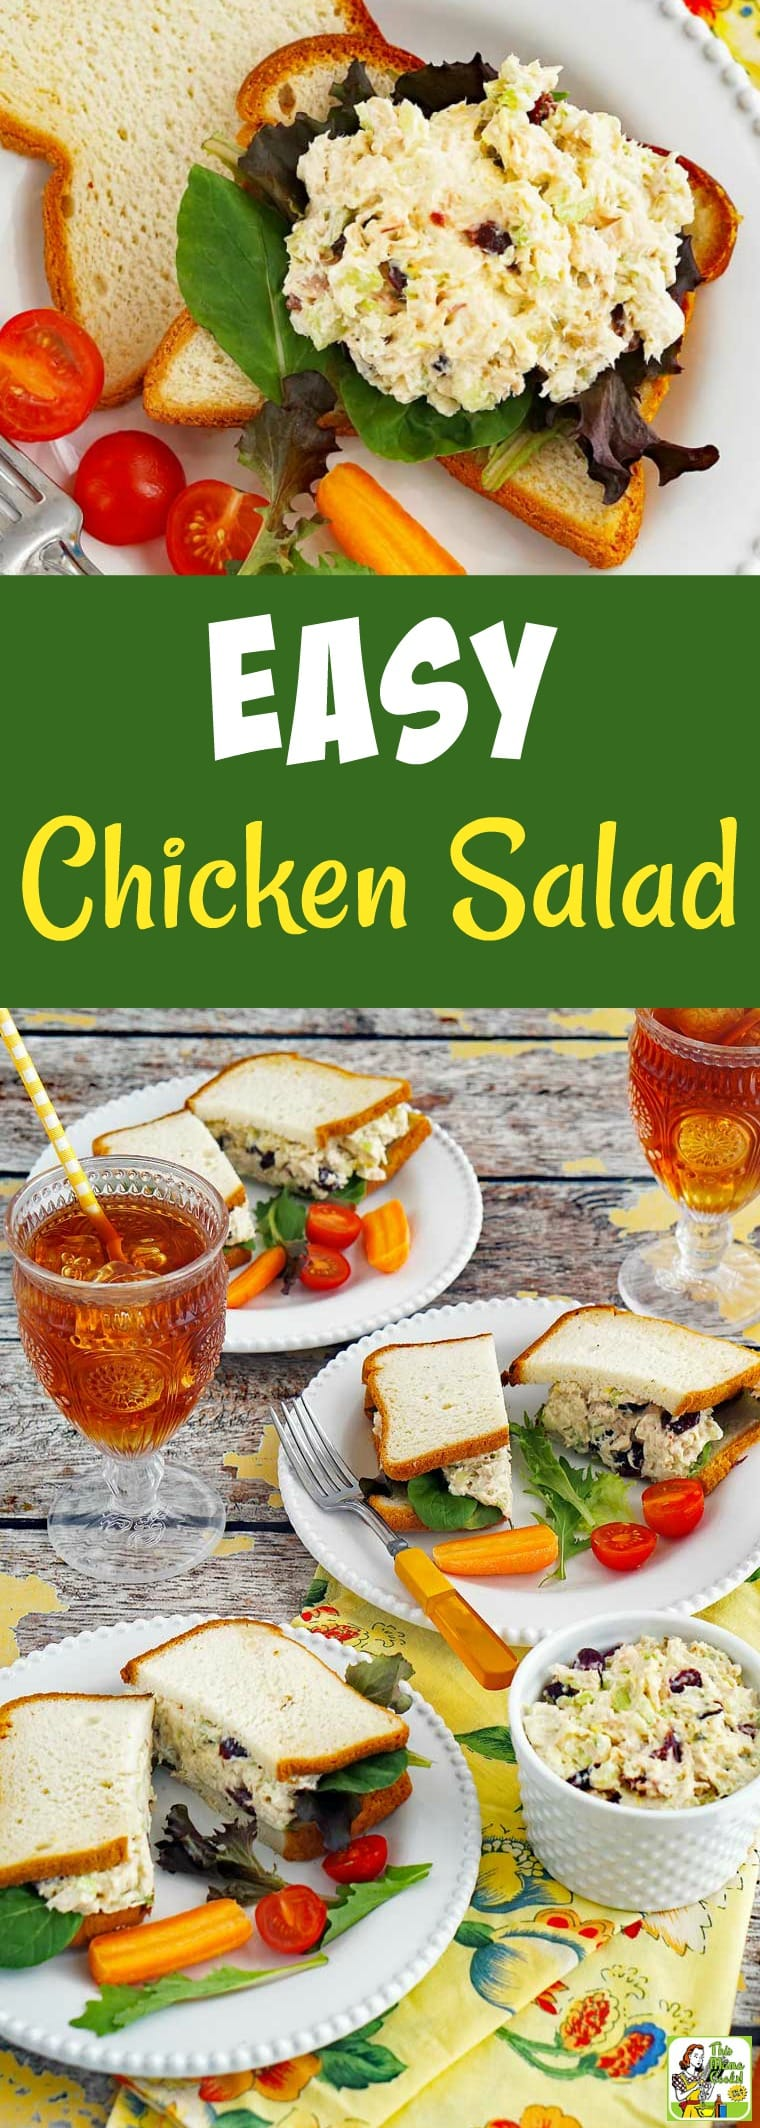 How To Make An Easy Chicken Salad Recipe. Love chicken salad from the deli counter? Then make your own homemade chicken salad in less than 30 minutes. This chicken salad sandwich recipe is gluten-free and made with Greek yogurt, celery, and dried cranberries. #chicken #salad #glutenfree #cranberries #sandwich #chickensalad